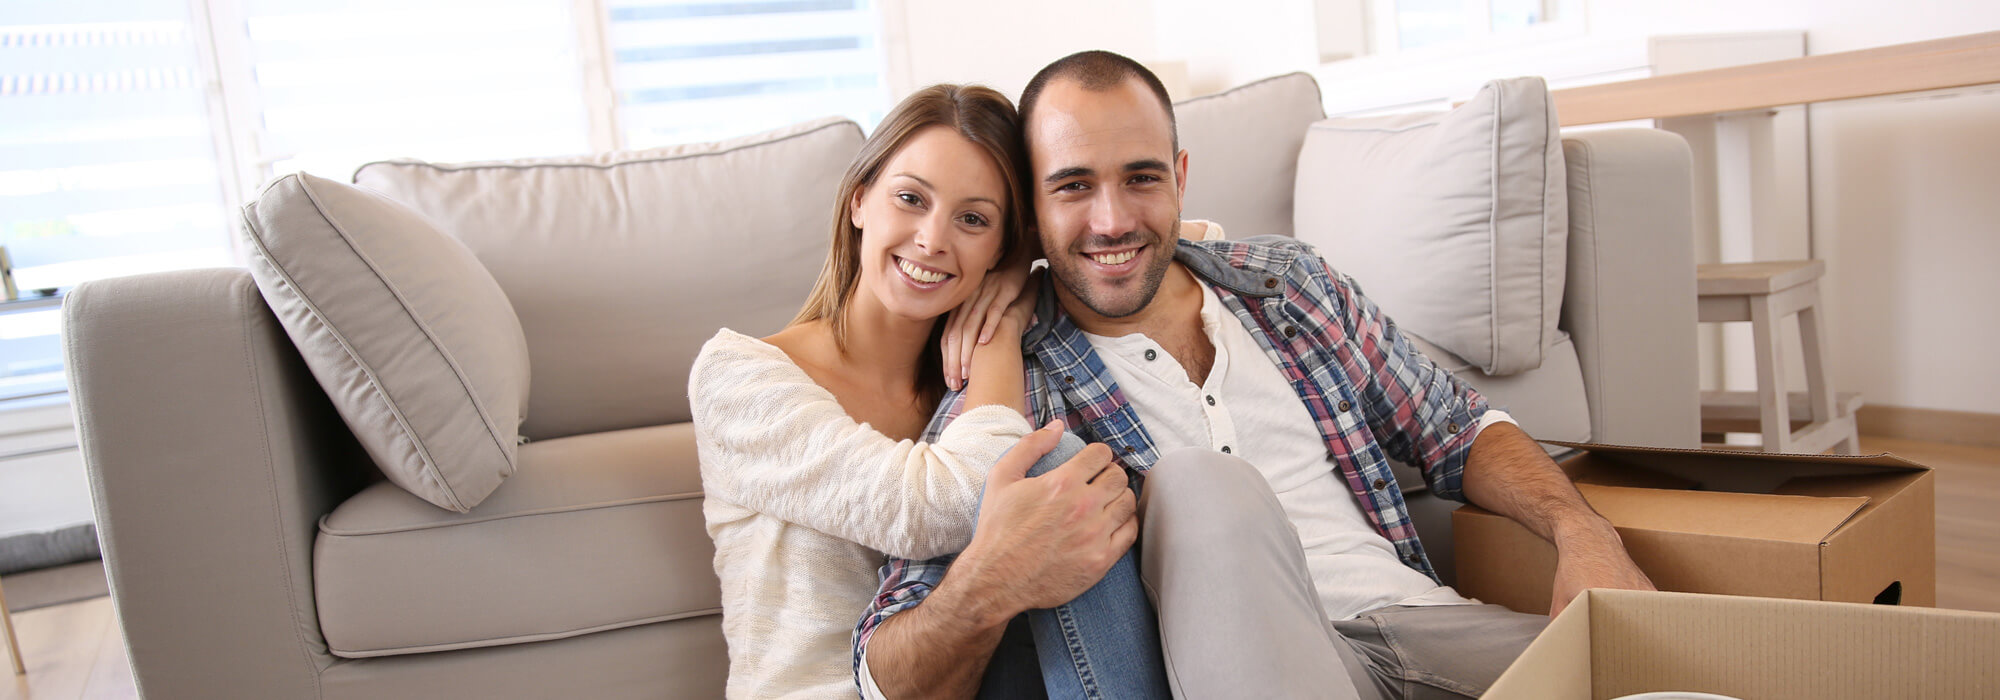 Renting Property Checklist Owner Tennant - Happy couple moving into a rented home